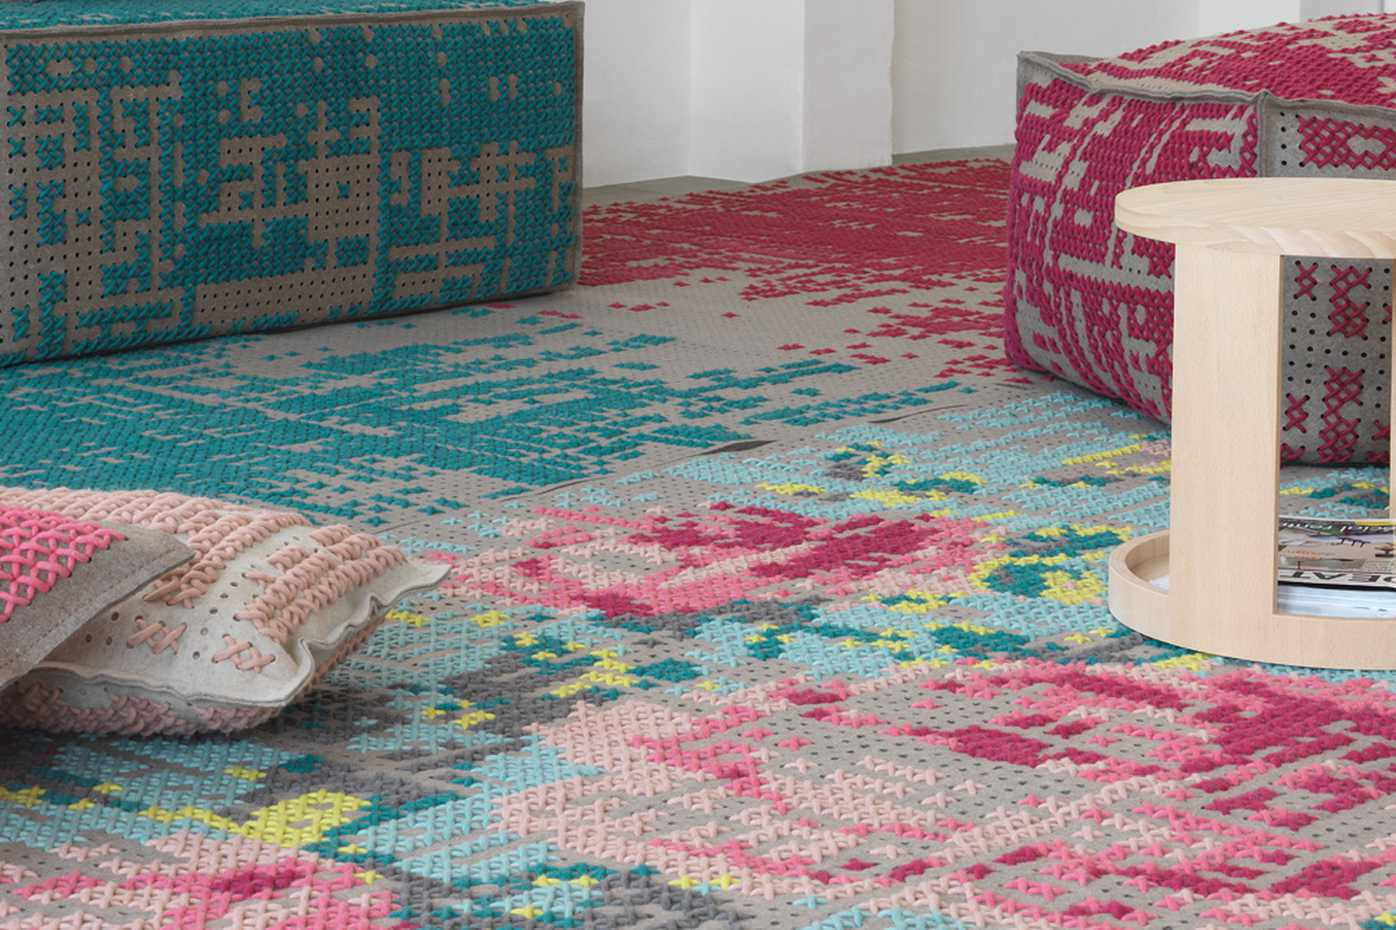 Canevas Rugs by Gan Rugs product image 3